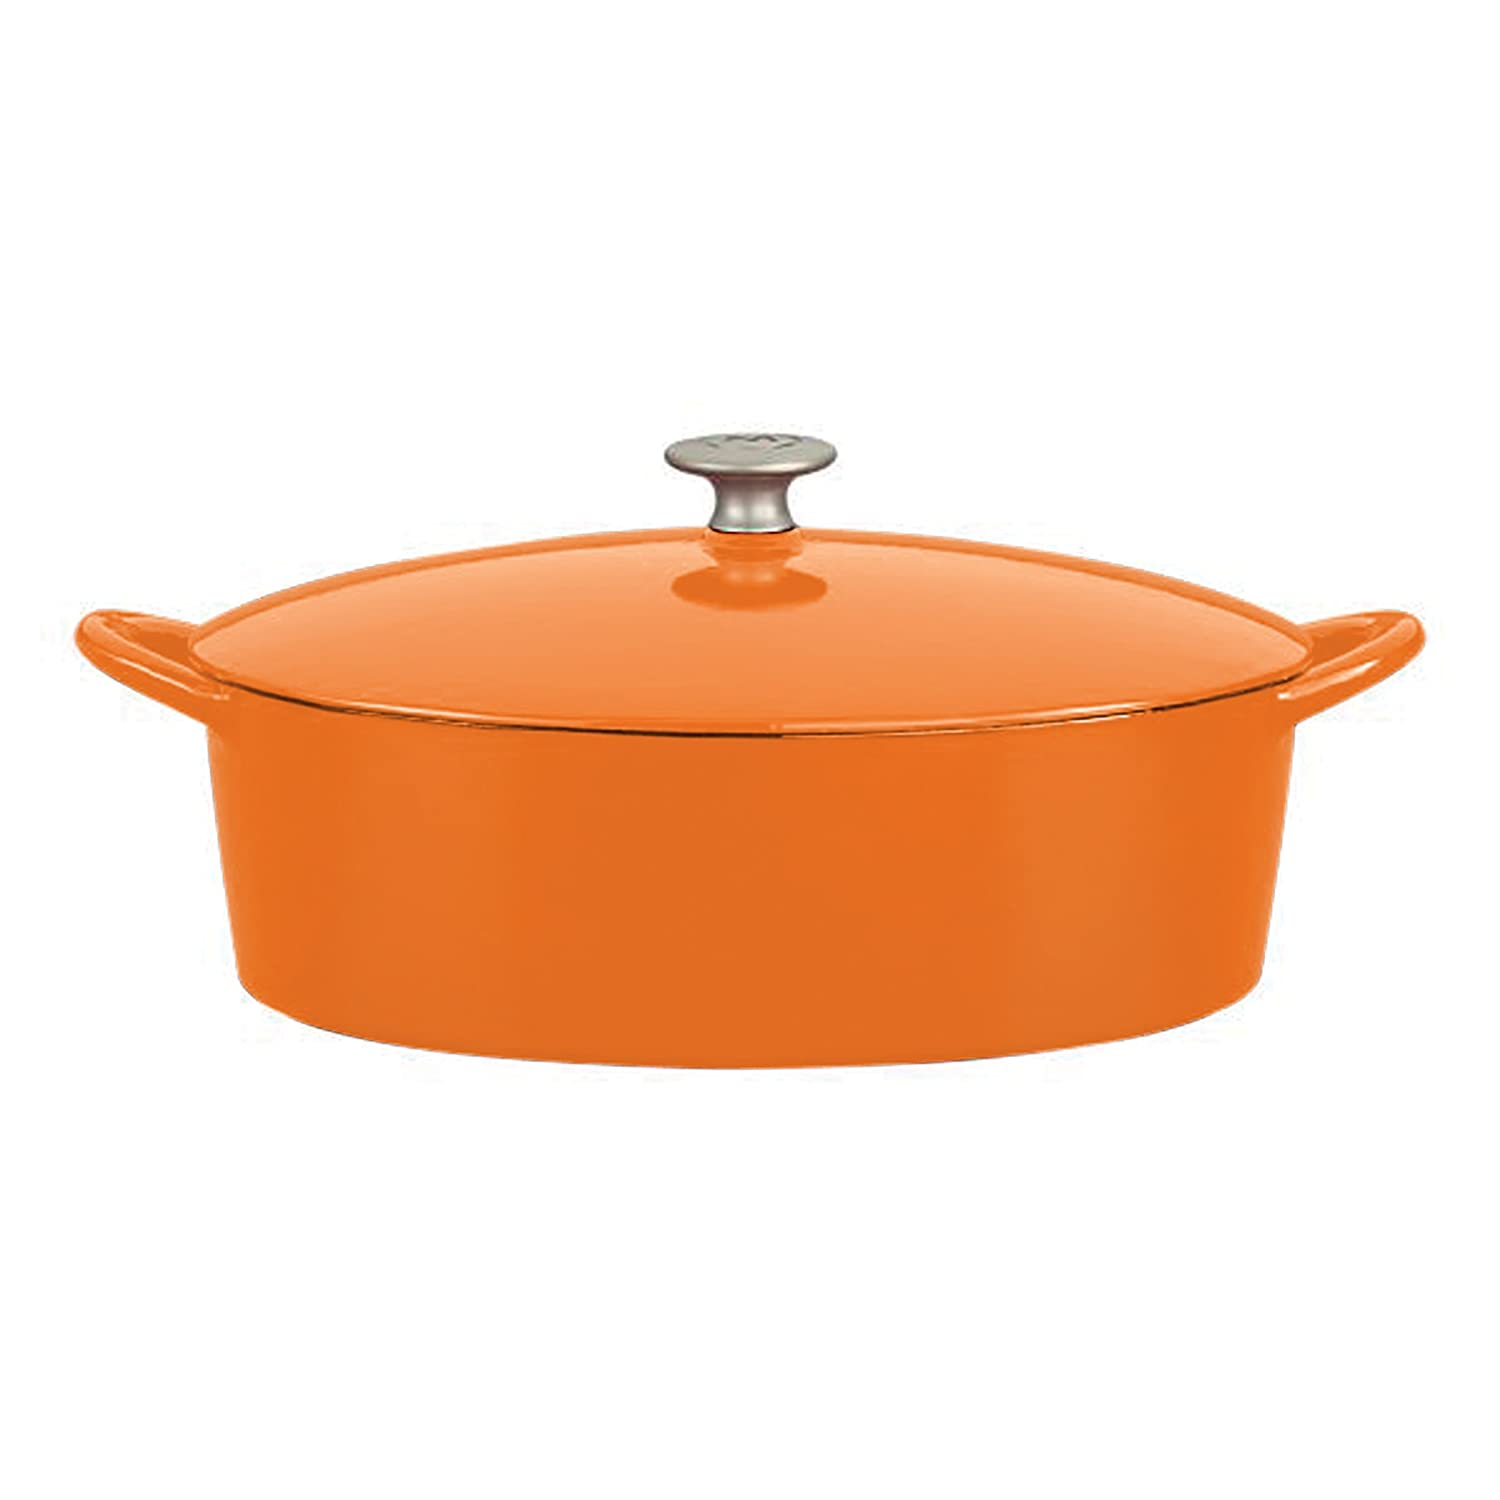 Mario Batali by Dansk Enameled Cast Iron 6-Quart Oval Dutch Oven, Persimmon